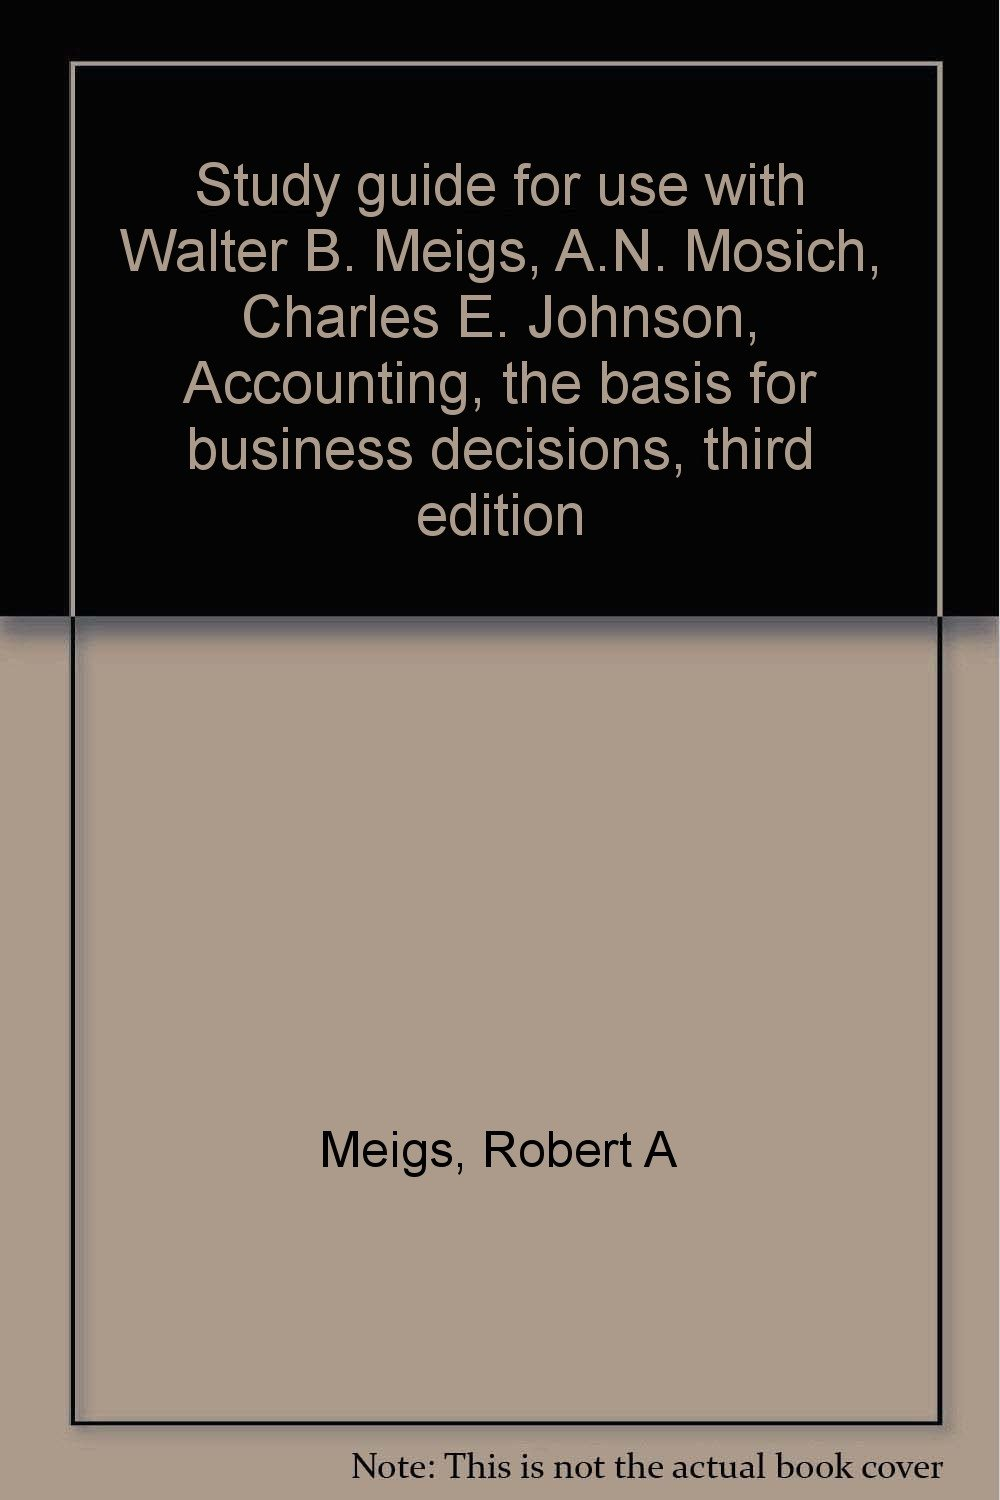 Study Guide For Use With Walter B. Meigs, A.N. Mosich, Charles E. Johnson, Accounting, The Basis For Business Decisions